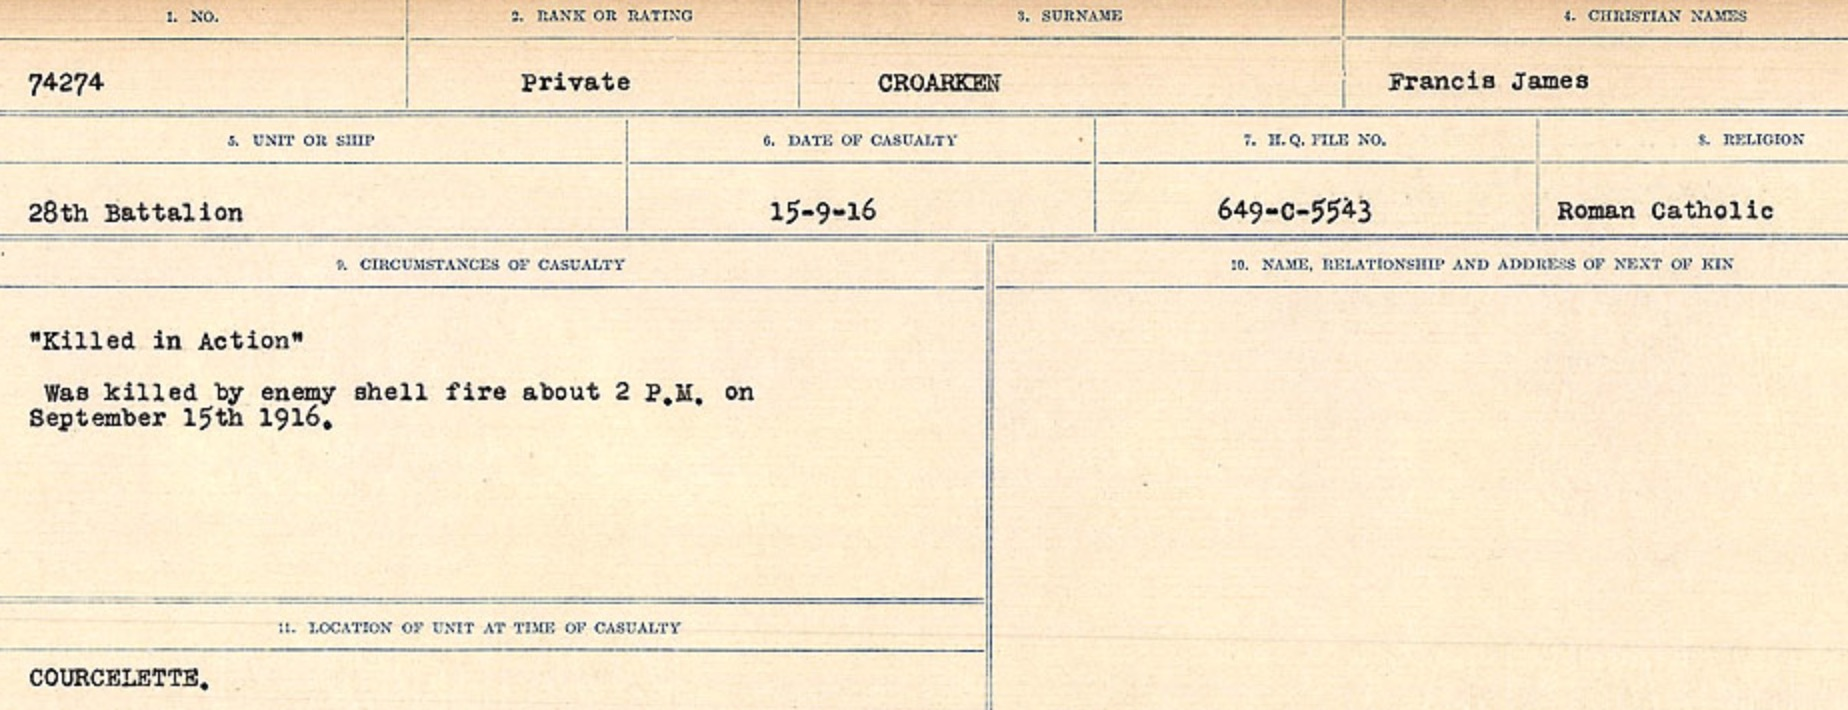 Circumstances of death registers– Source: Library and Archives Canada. CIRCUMSTANCES OF DEATH REGISTERS, FIRST WORLD WAR Surnames: CRABB TO CROSSLAND Microform Sequence 24; Volume Number 31829_B016733. Reference RG150, 1992-93/314, 168. Page 569 of 788.